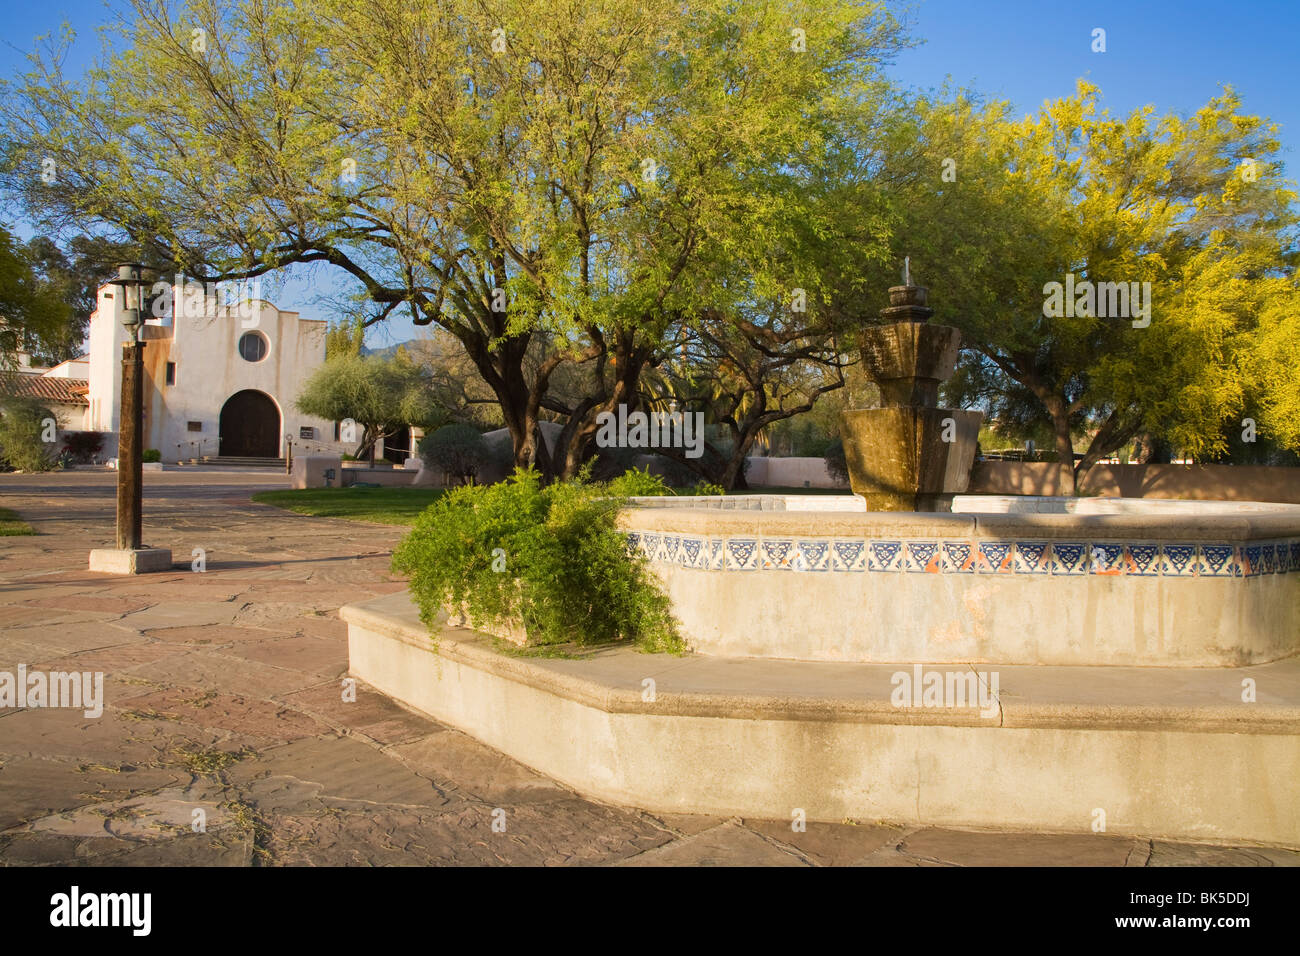 Courtyard and fountain, St. Philip's in the Hills Church, Tucson, Pima County, Arizona, United States of America, - Stock Image